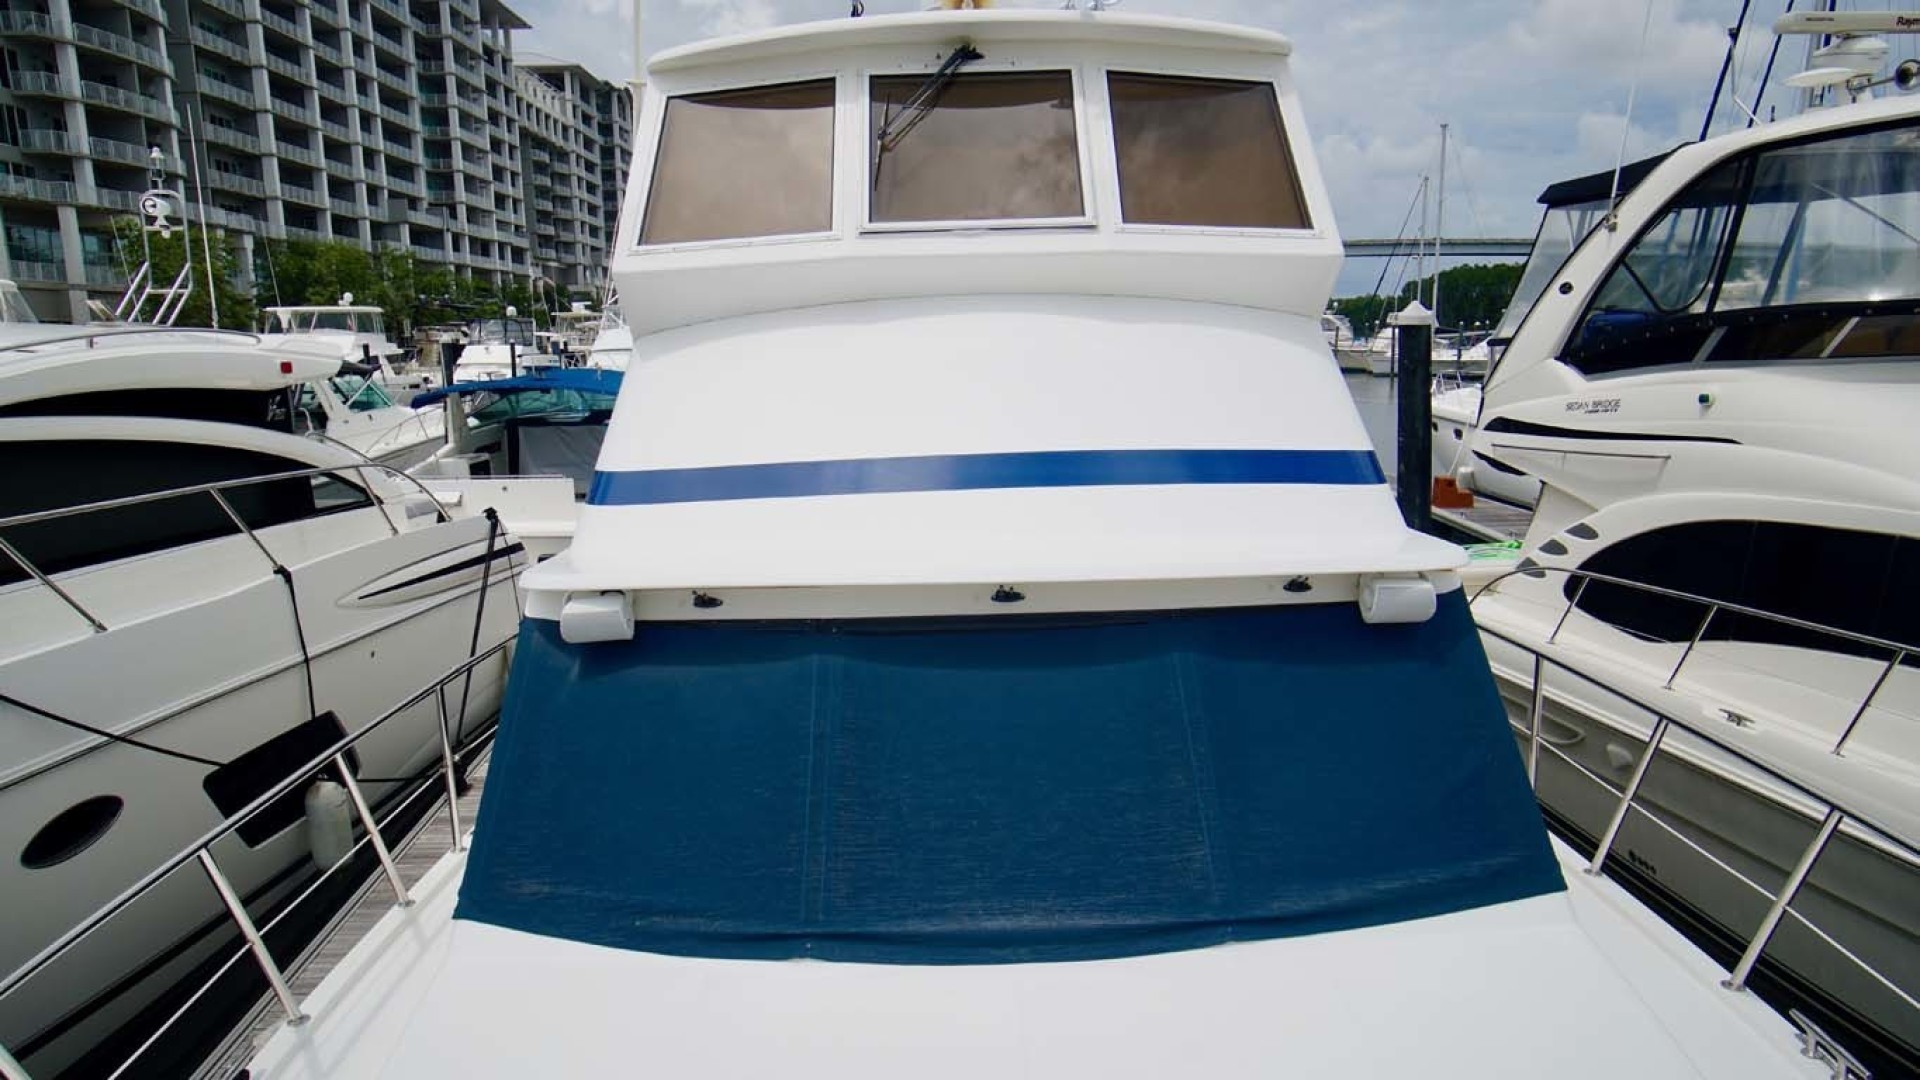 Novatec-48 Fast Trawler 2003-SINE DIE II Destin-Florida-United States-Bow Looking Aft-1360603 | Thumbnail